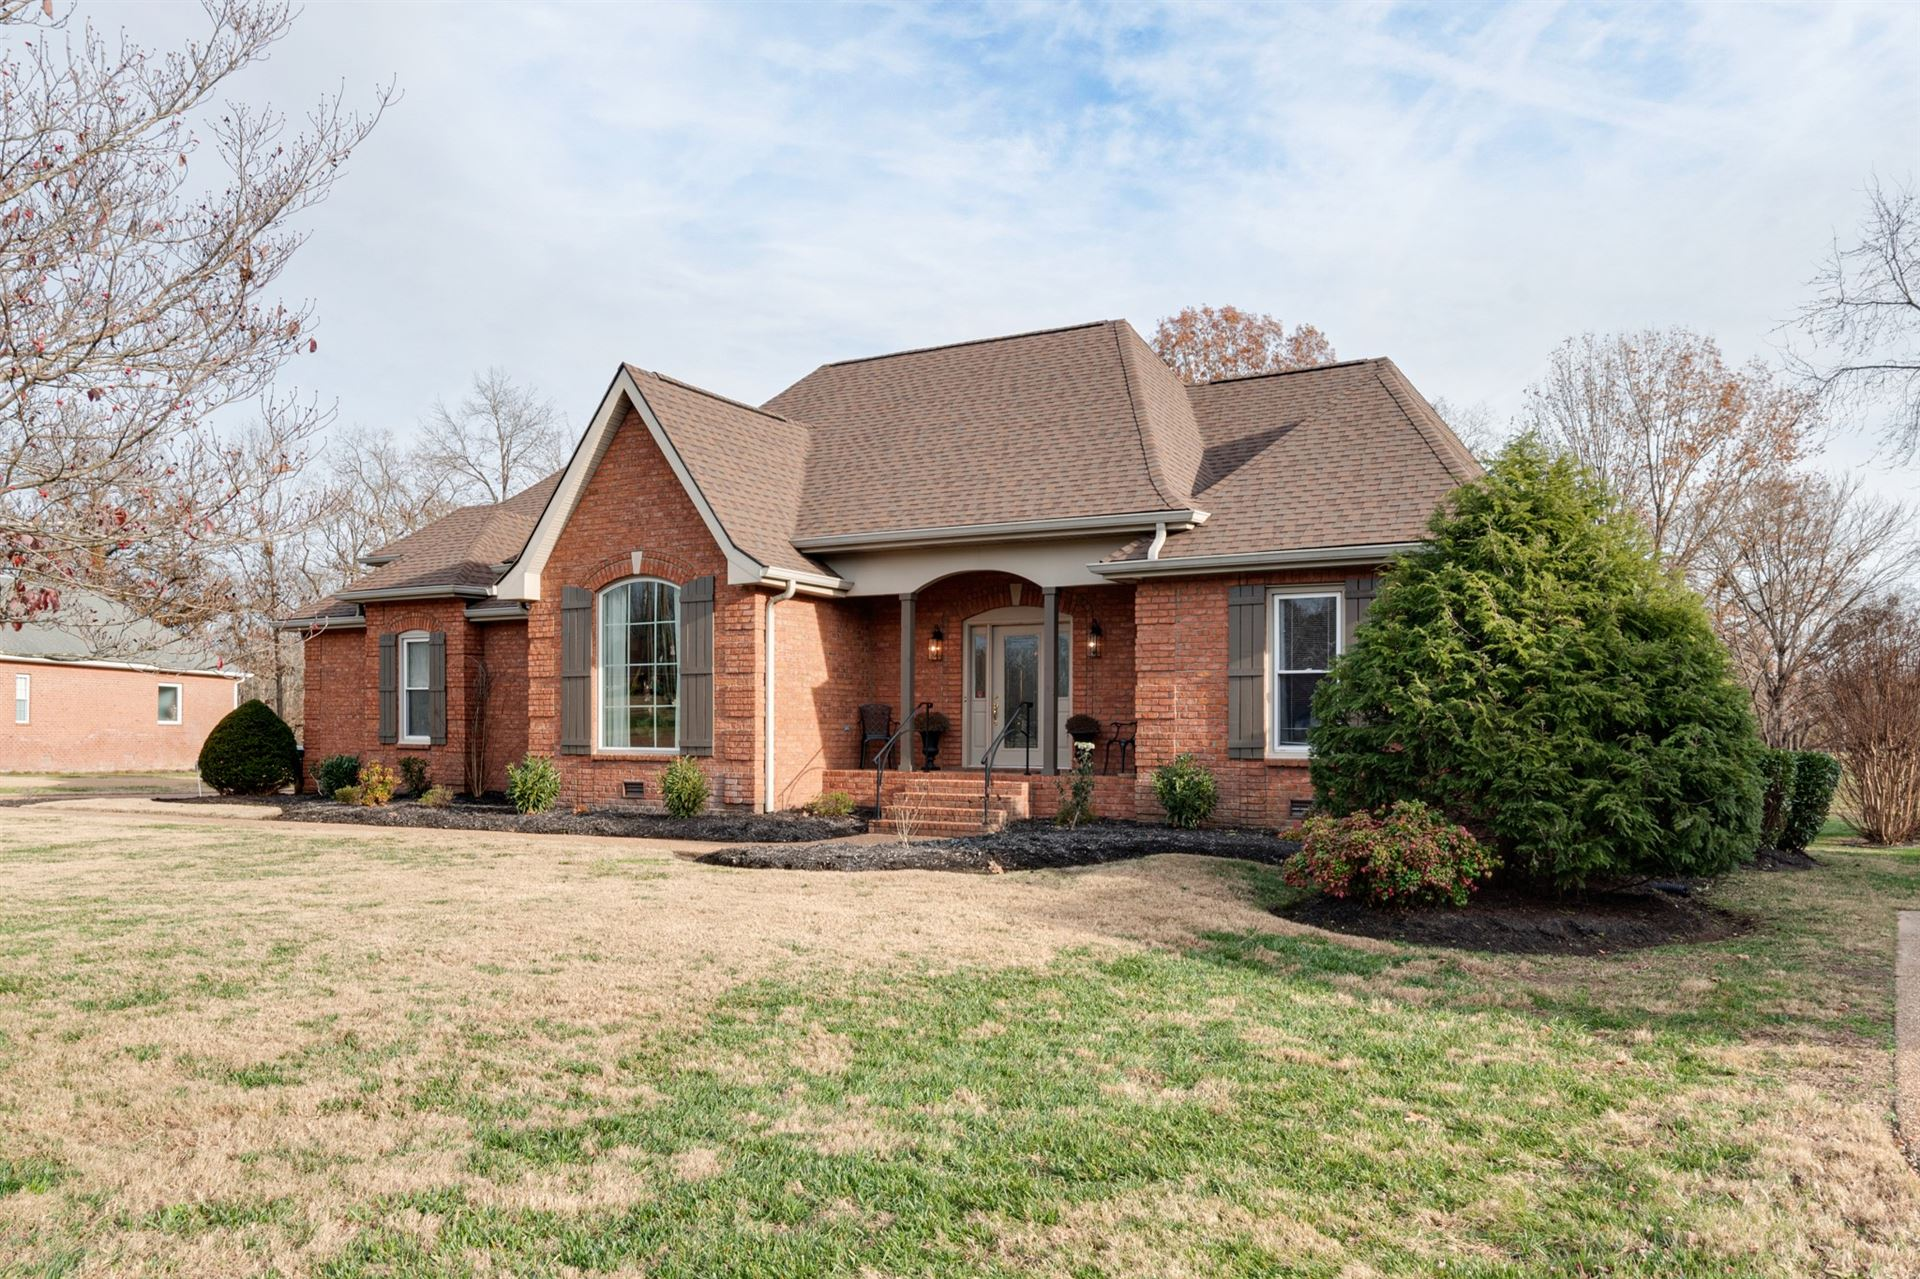 2019 Pointe Barton Dr, Lebanon, TN 37087 - MLS#: 2209838